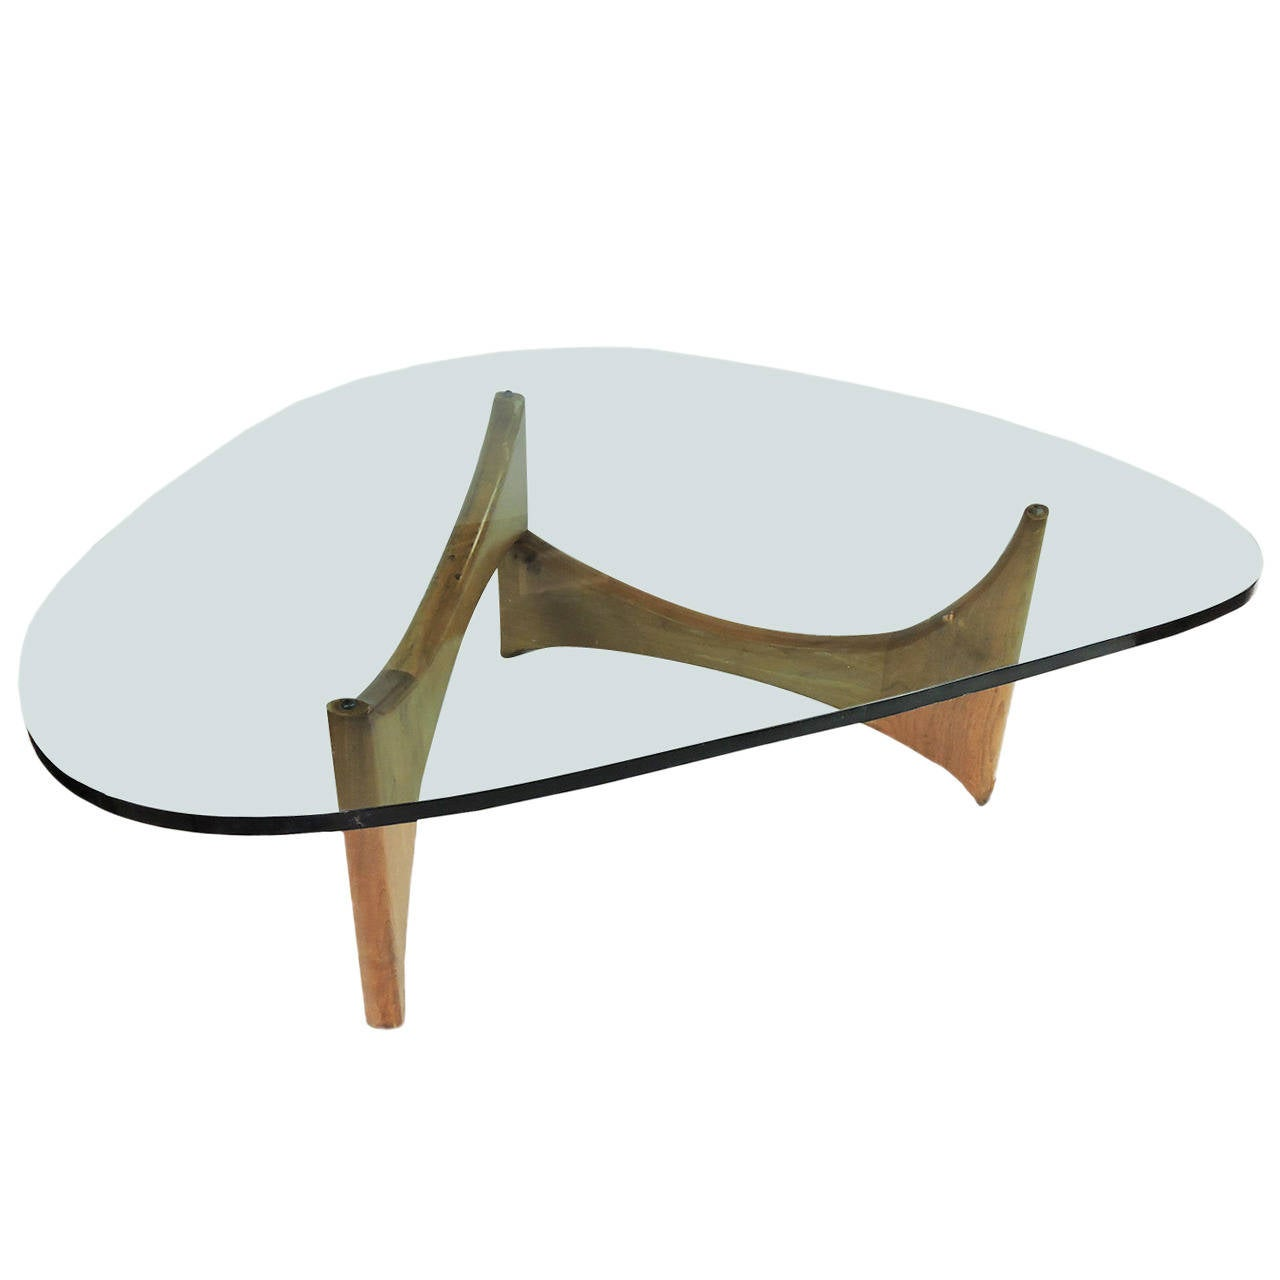 midcentury modern glass and wood coffee table . midcentury modern glass and wood coffee table at stdibs